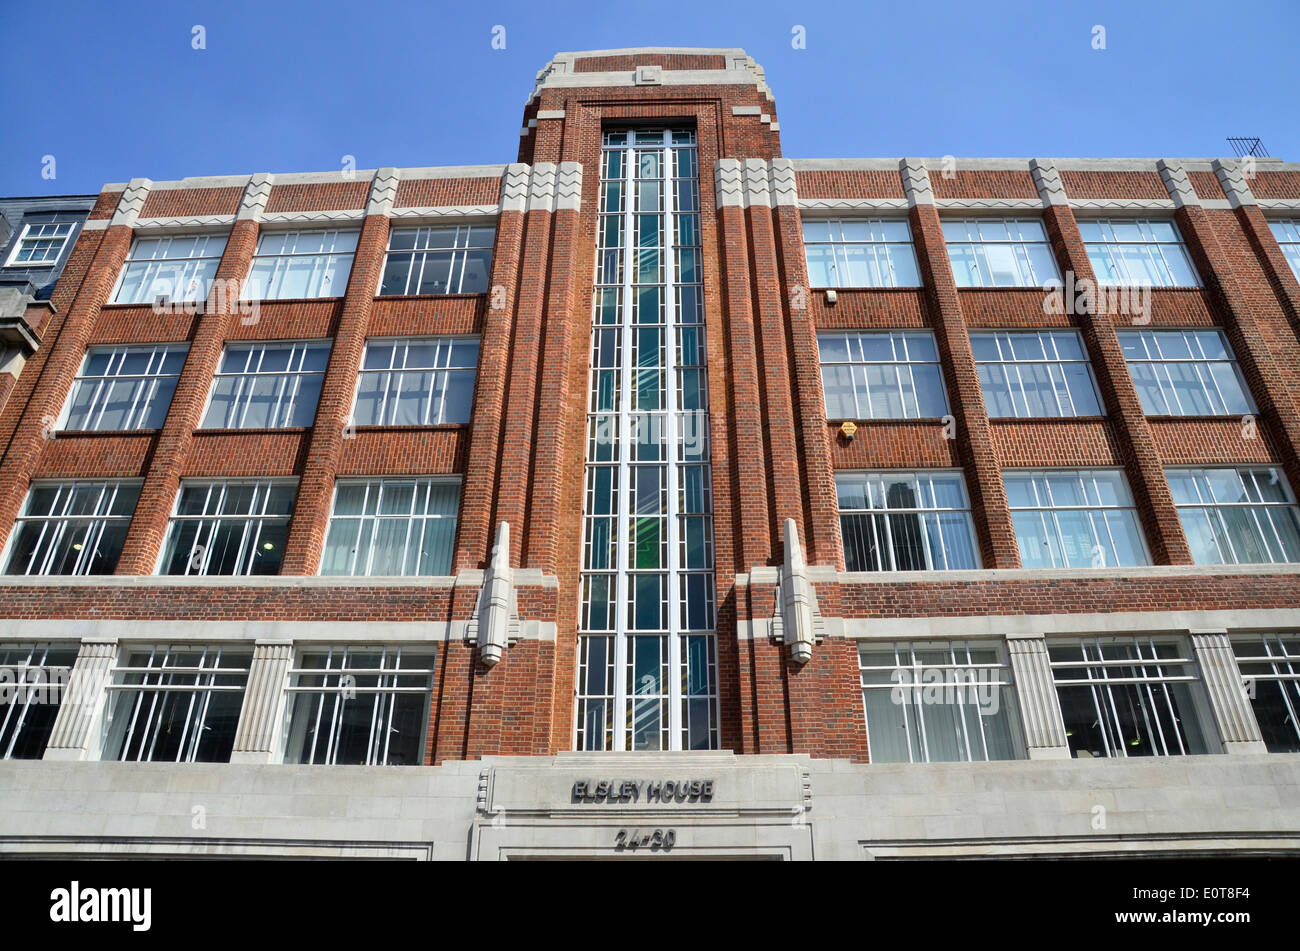 Art Deco Building In The Marylebone Area Of London